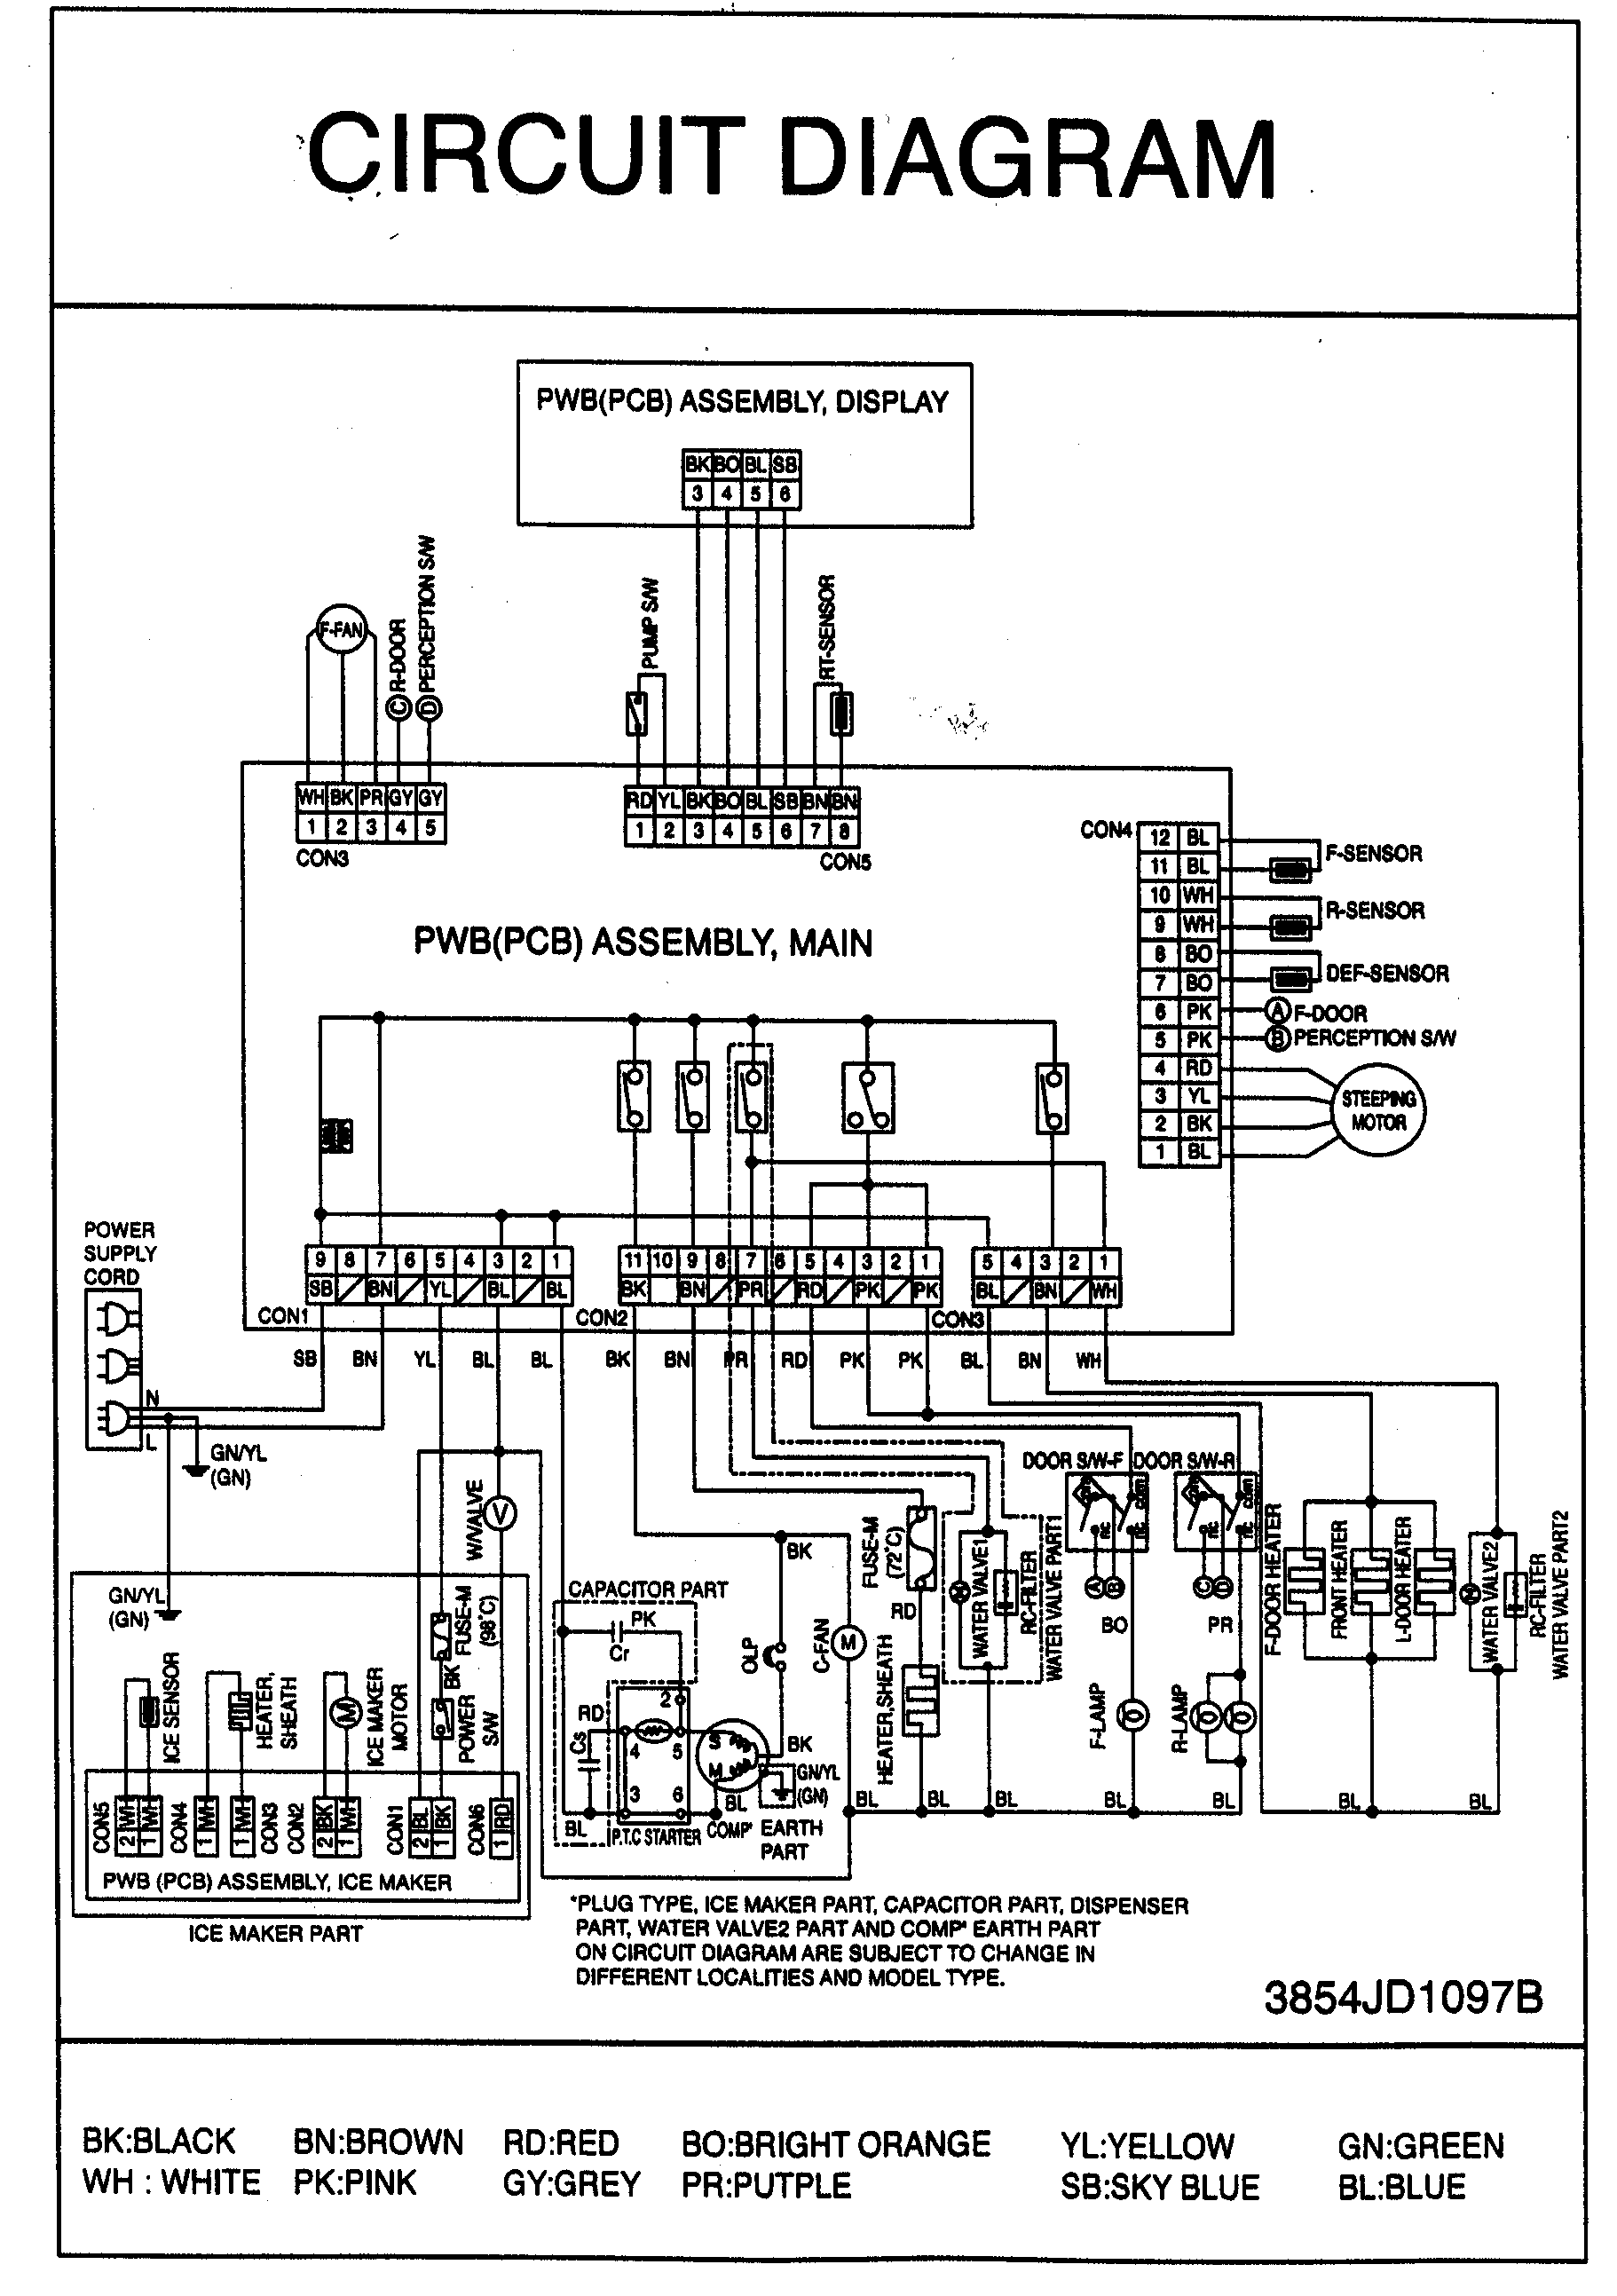 wiring diagram of refrigerator aem wideband o2 sensor kenmore elite ice maker